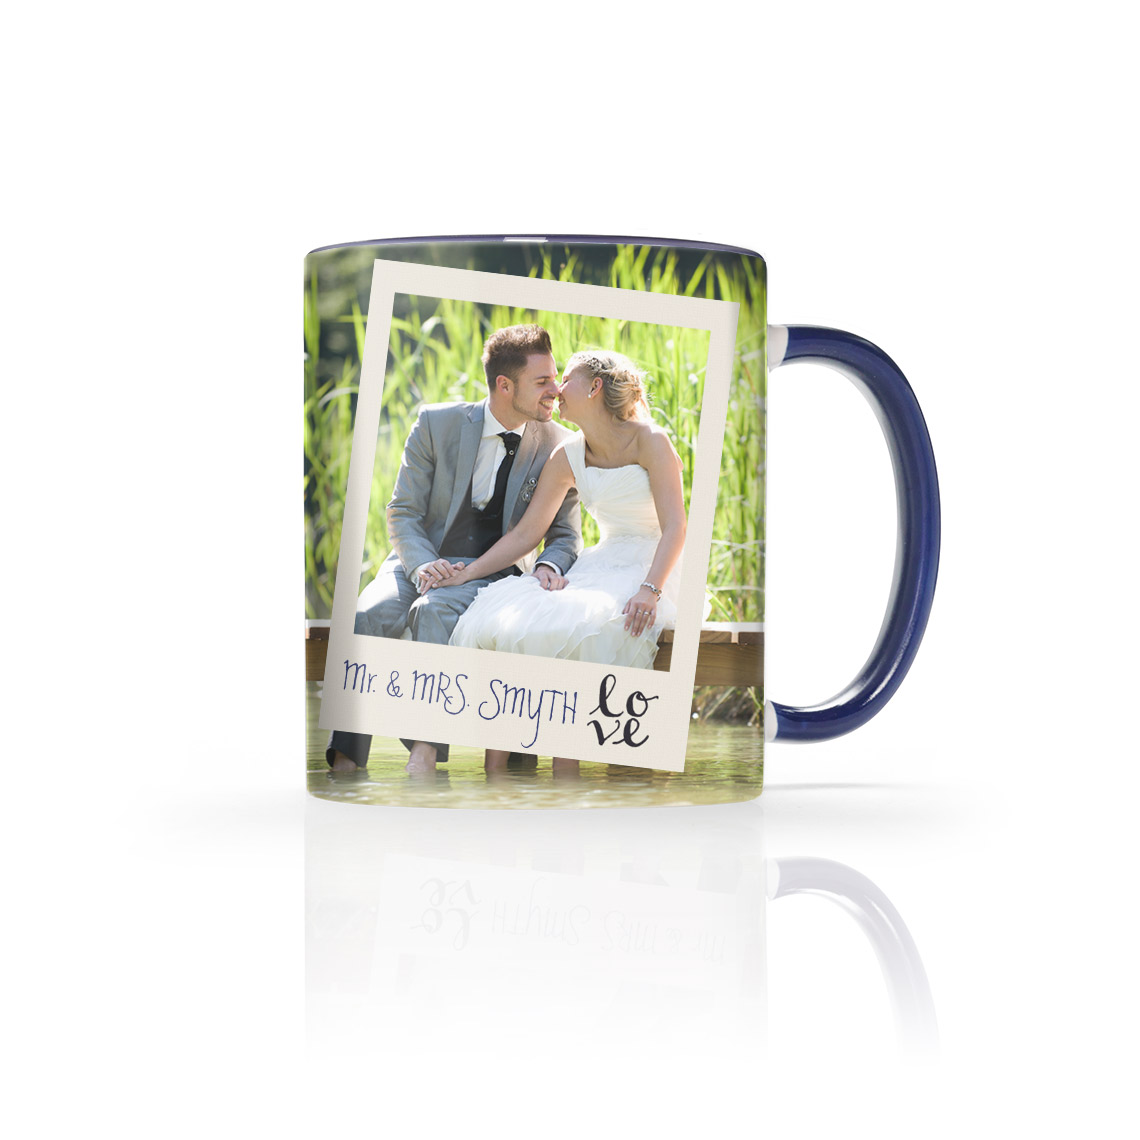 Personalized coffee mugs raleigh nc - 11 Oz Navy Blue Photo Mug